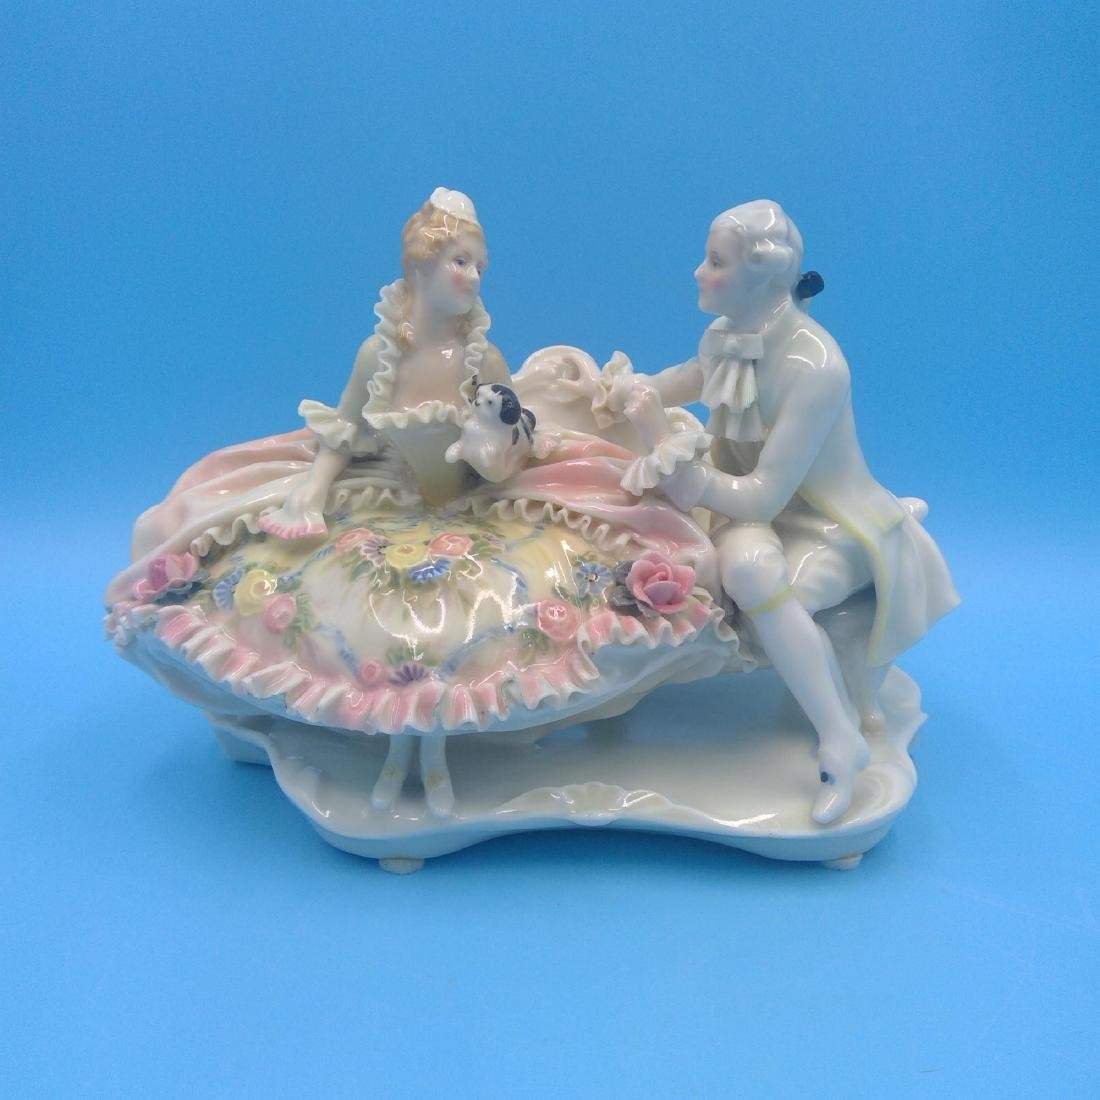 KARL ENS GERMAN PORCELAIN FIGURINE COURTING COUPLE